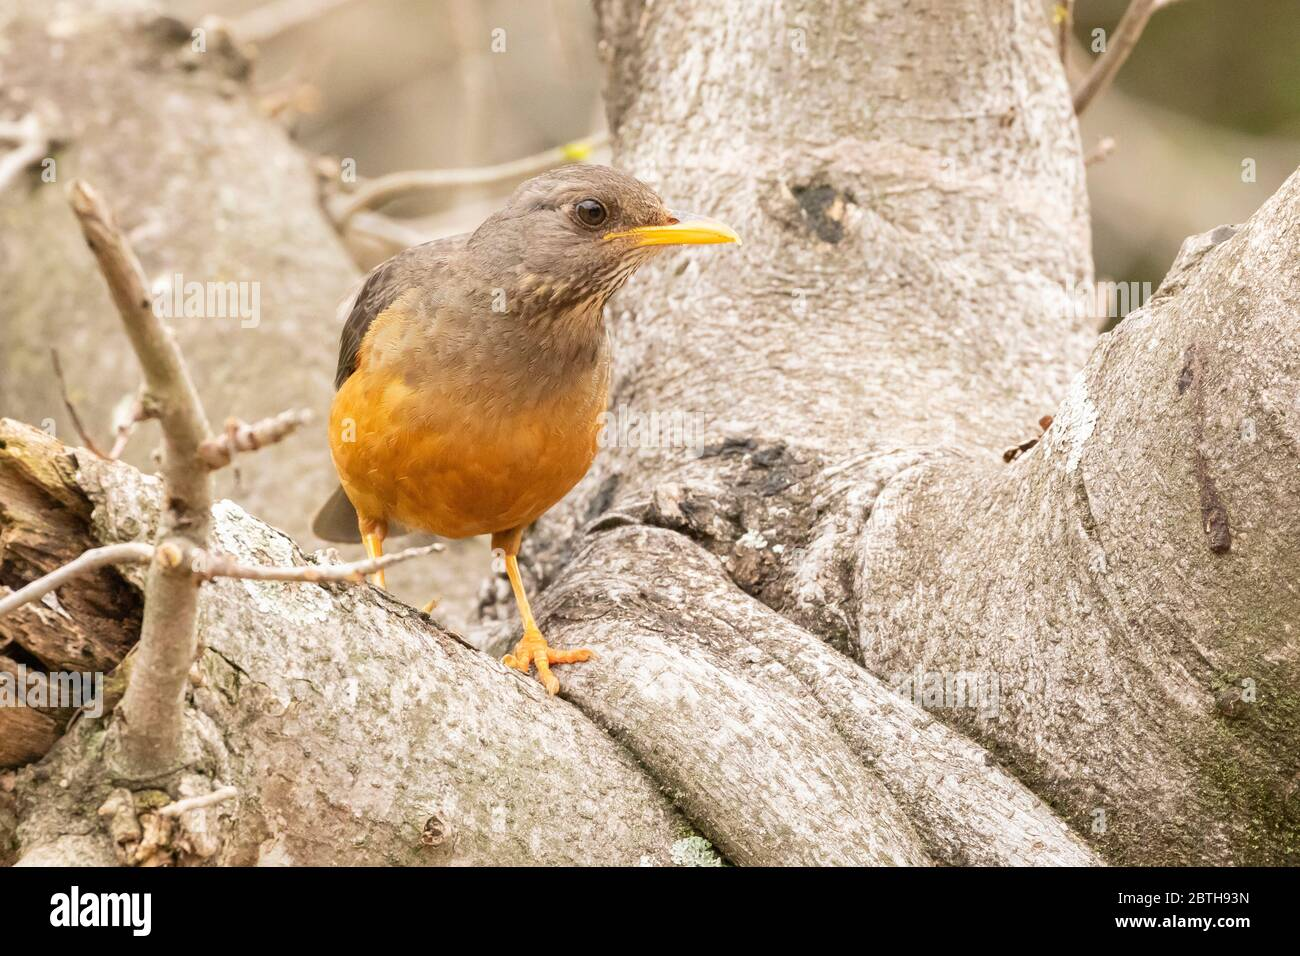 Olive Thrush (Turdus olivaceus)  on tree, Eastern Cape South Africa Stock Photo